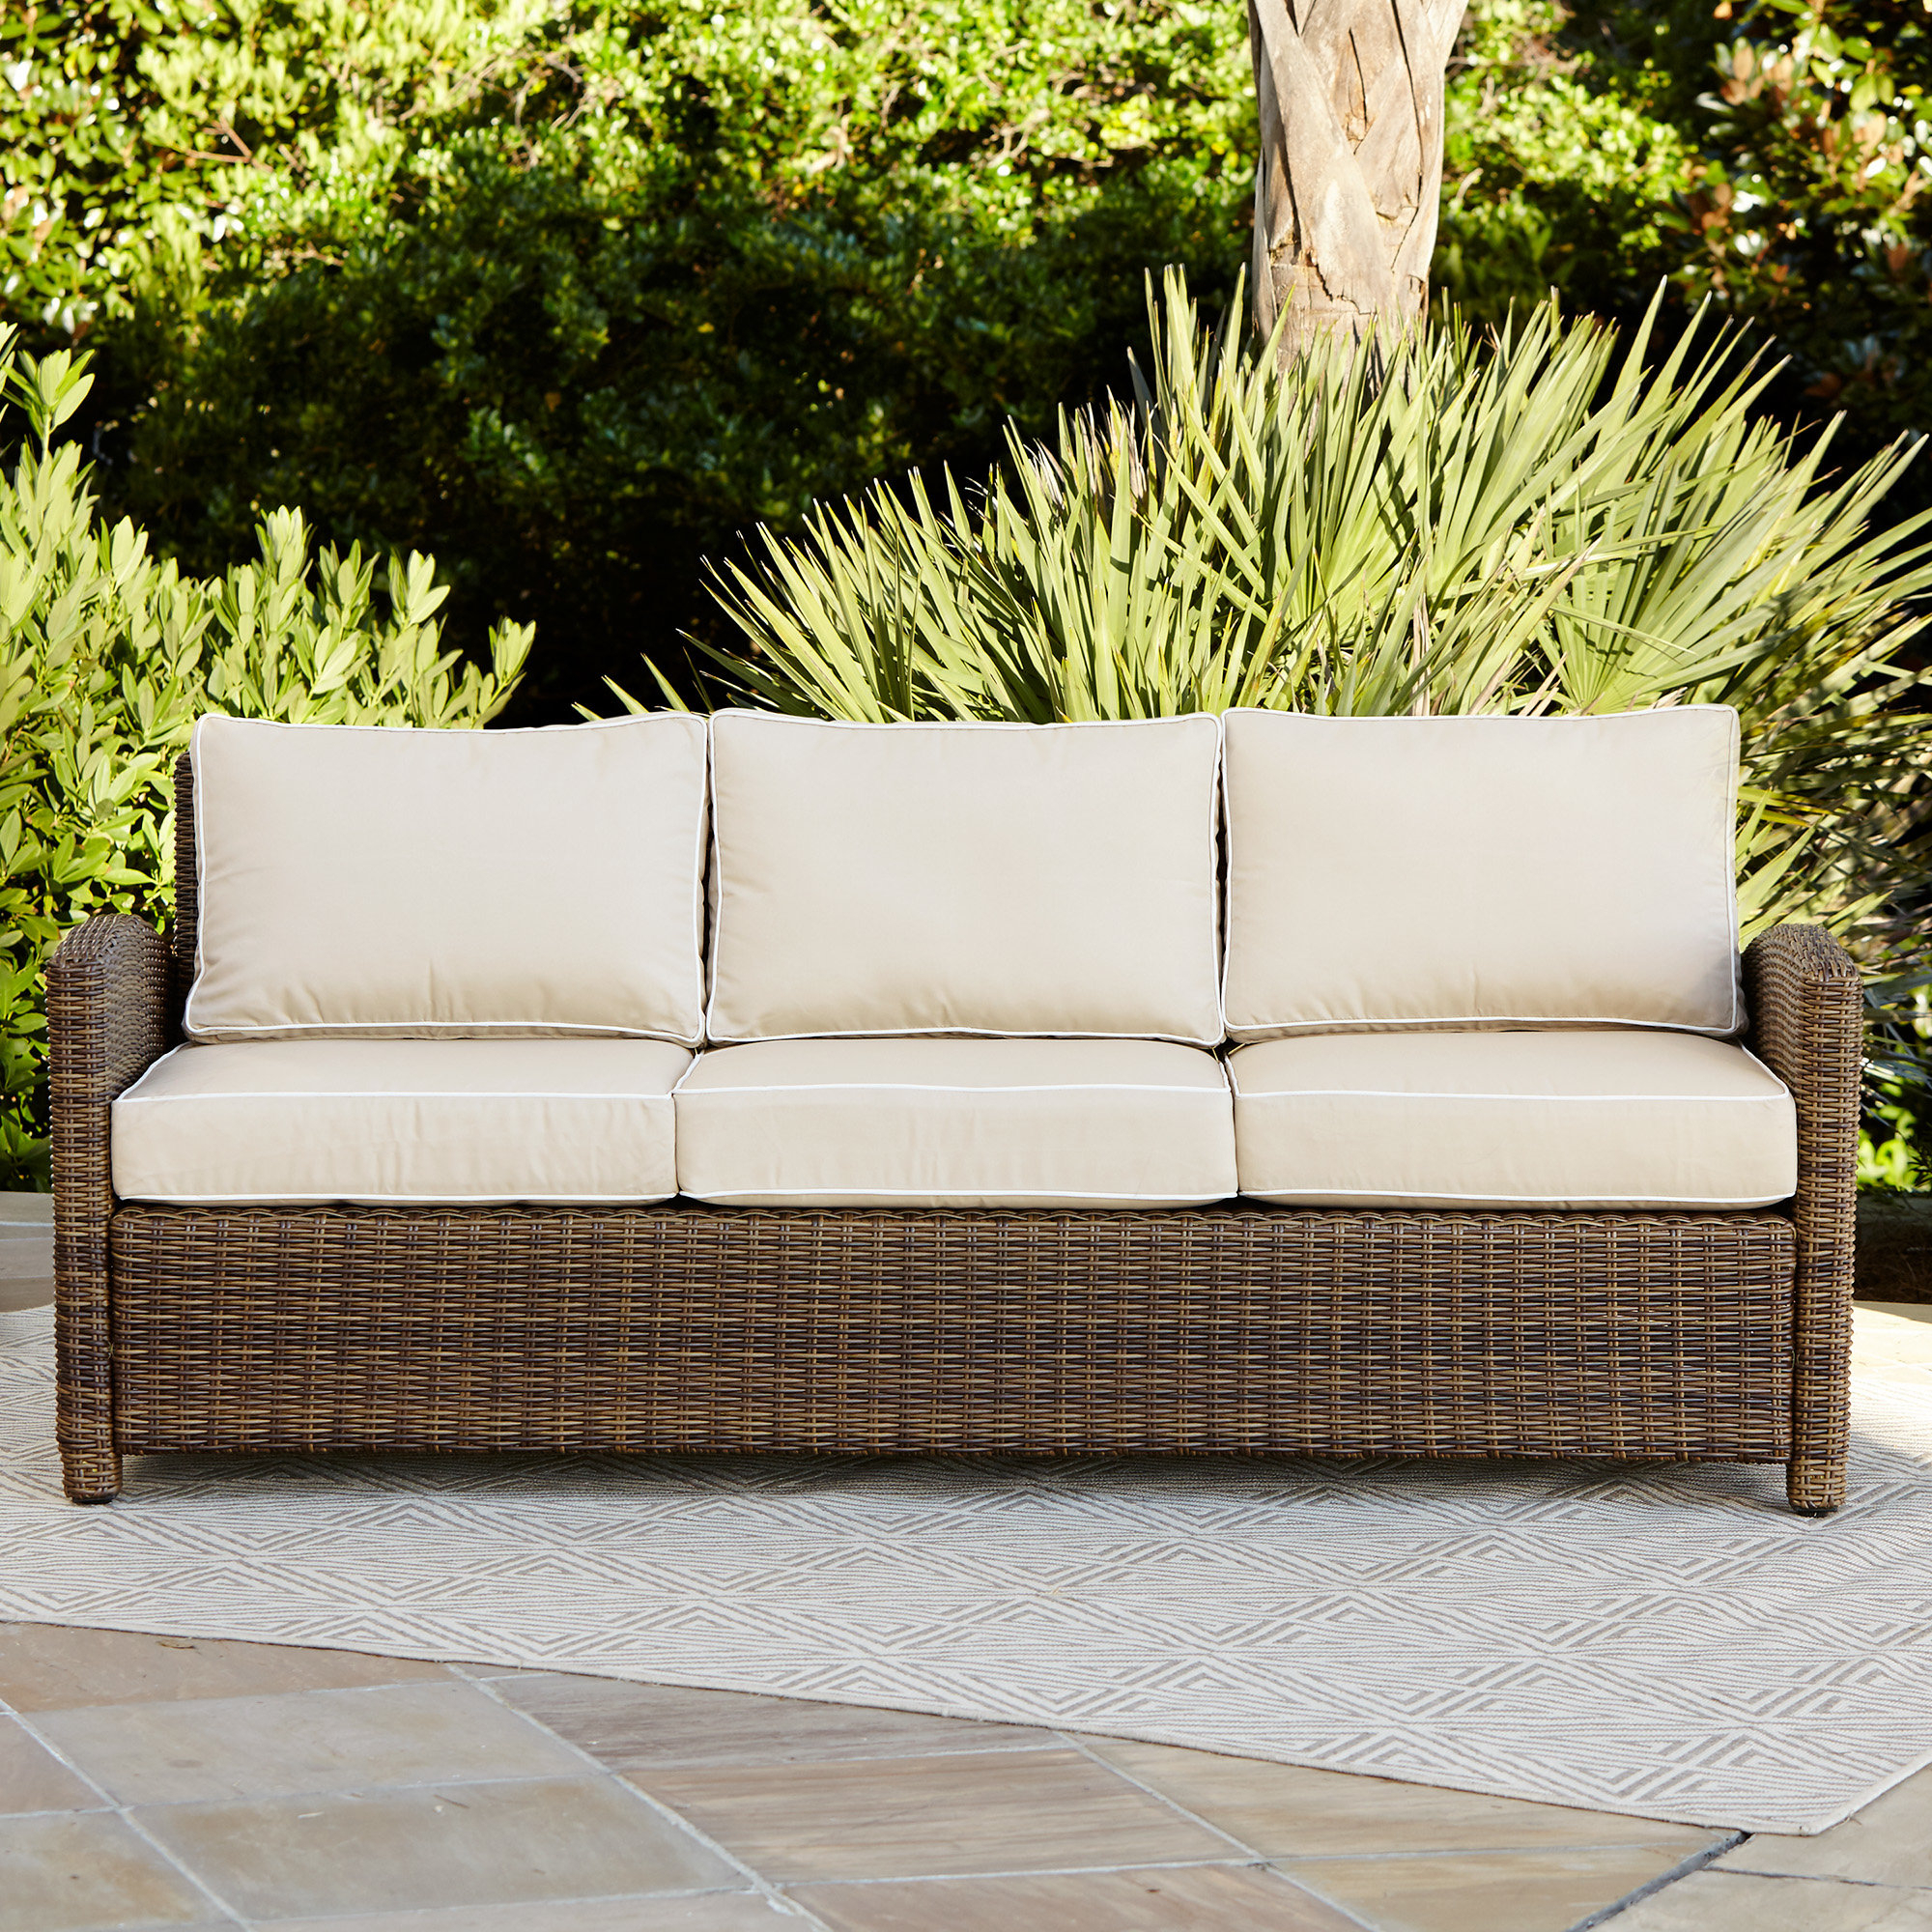 Nolen Patio Sectionals With Cushions For Well Known Lawson Patio Sofa With Cushions (View 7 of 20)